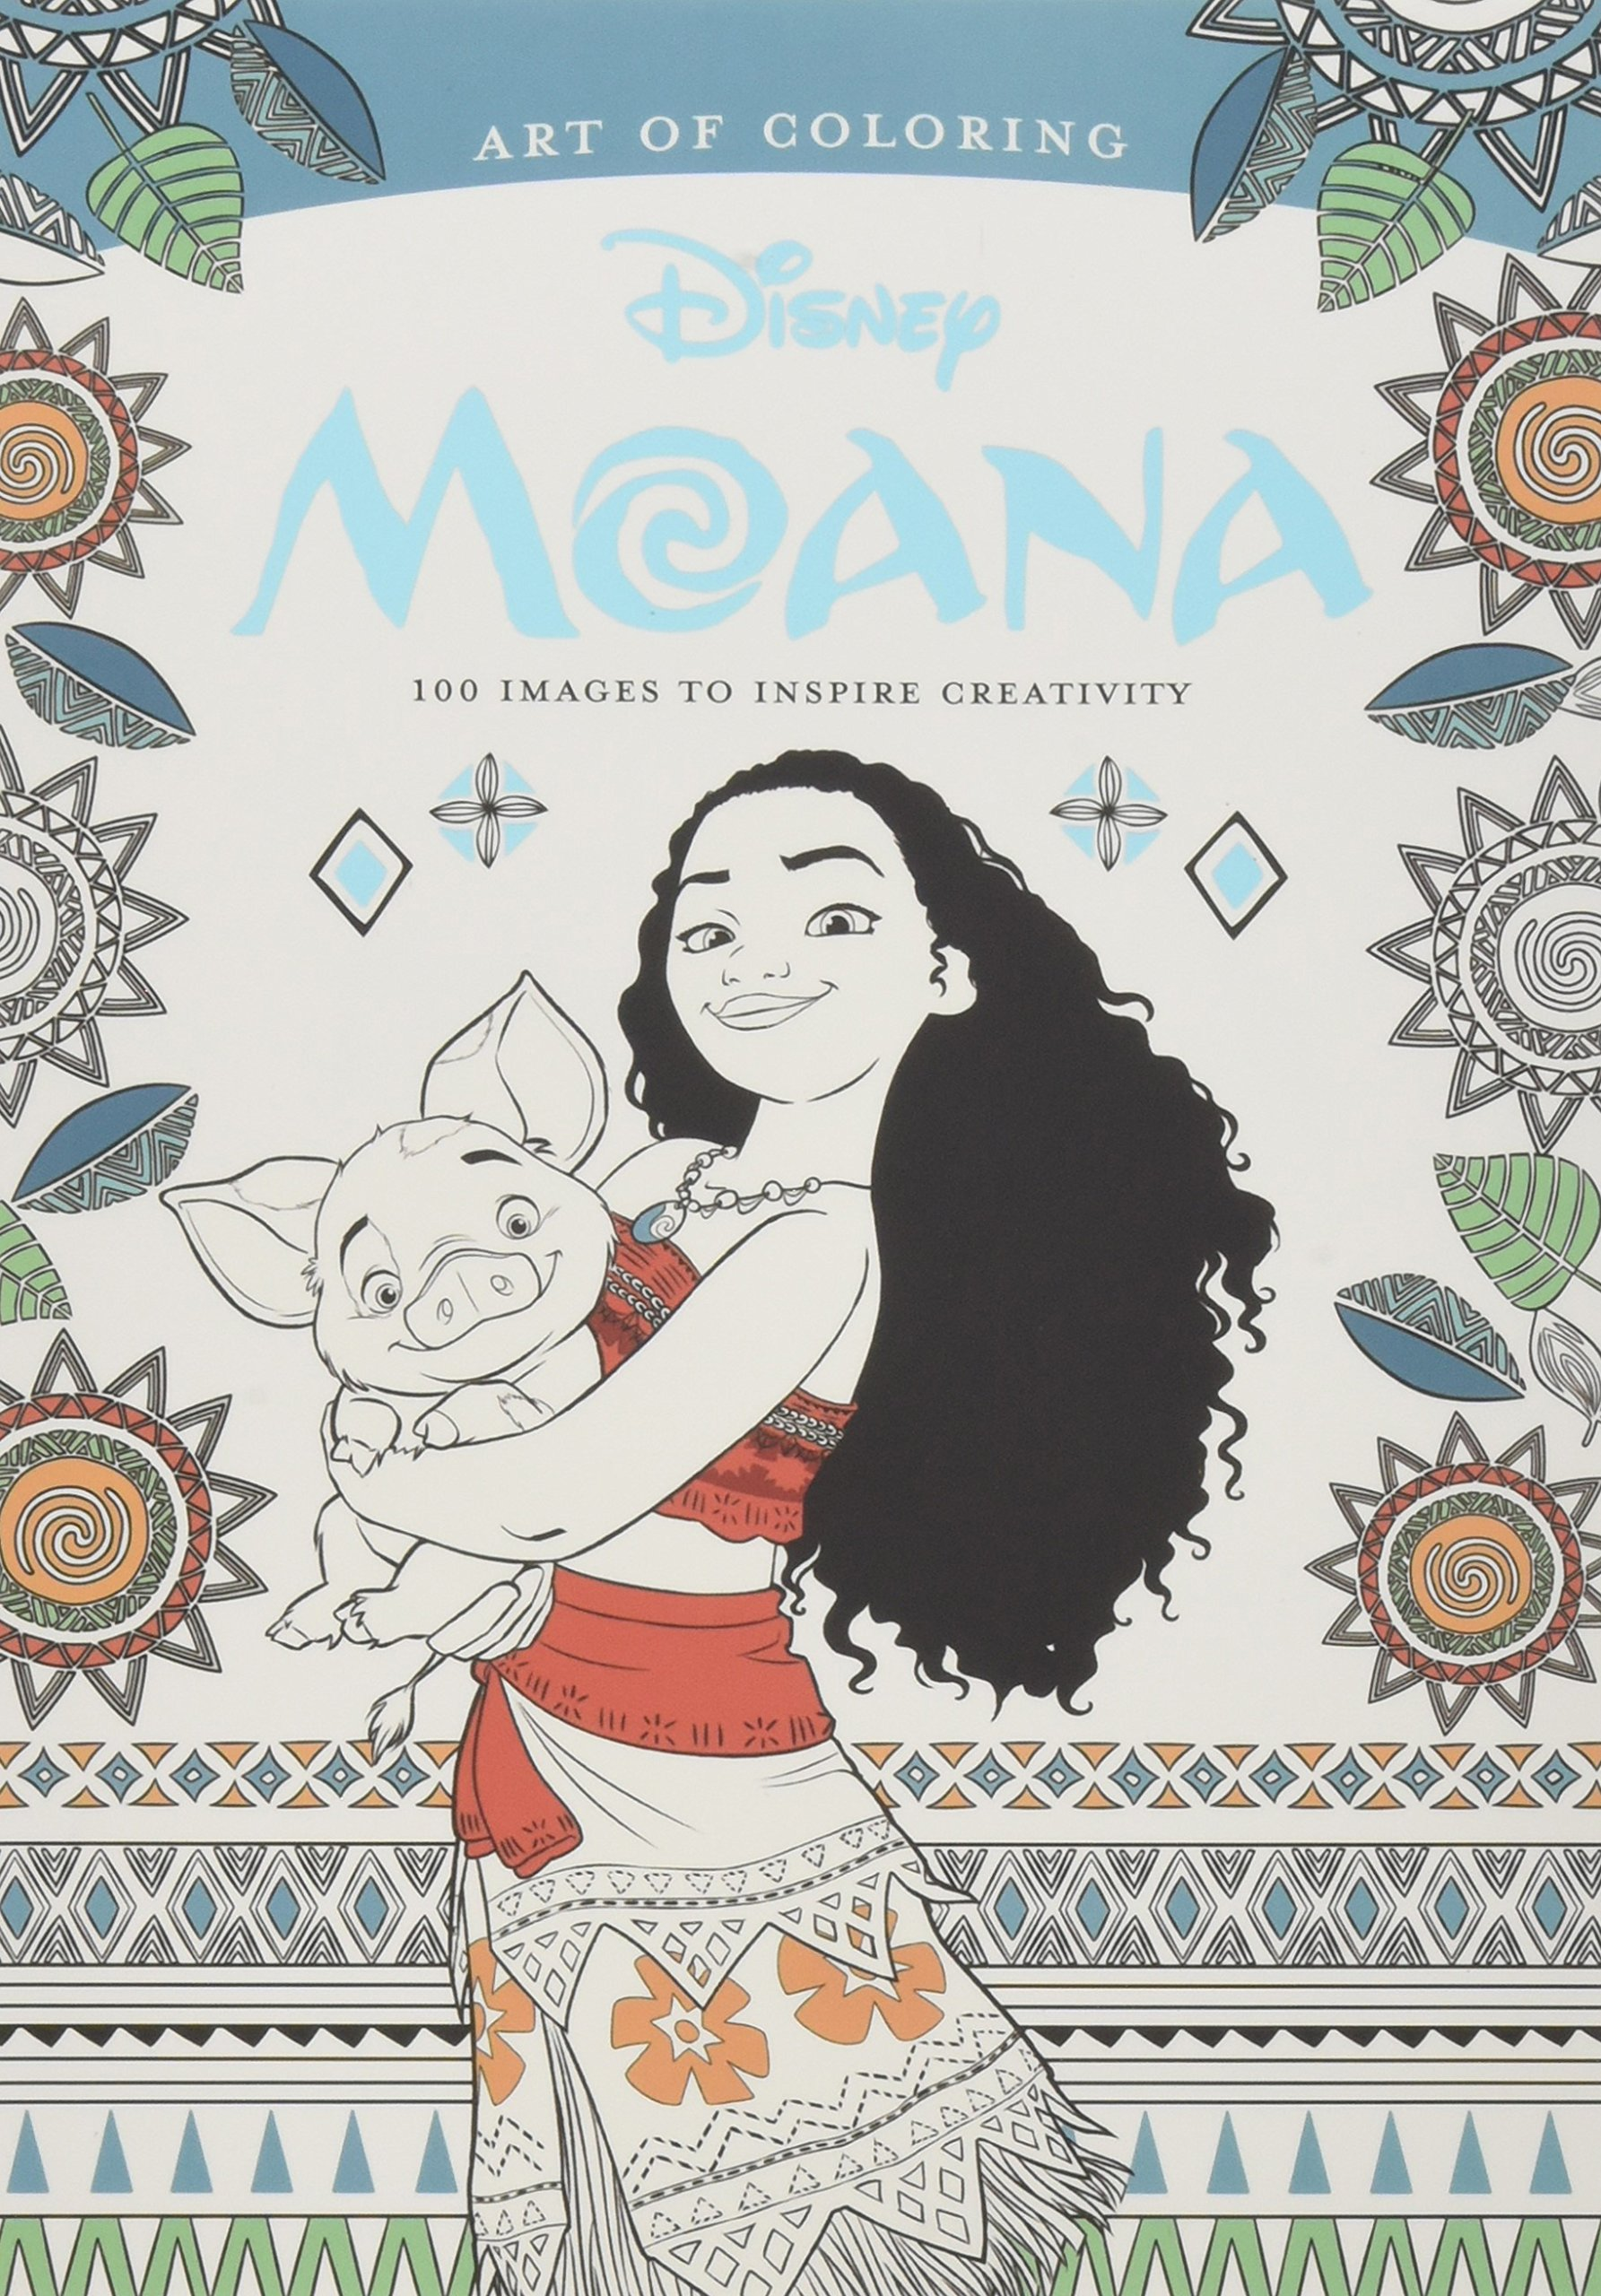 Disney princess art therapy colouring book - Amazon Com Art Of Coloring Moana 100 Images To Inspire Creativity 9781484789704 Dbg Books